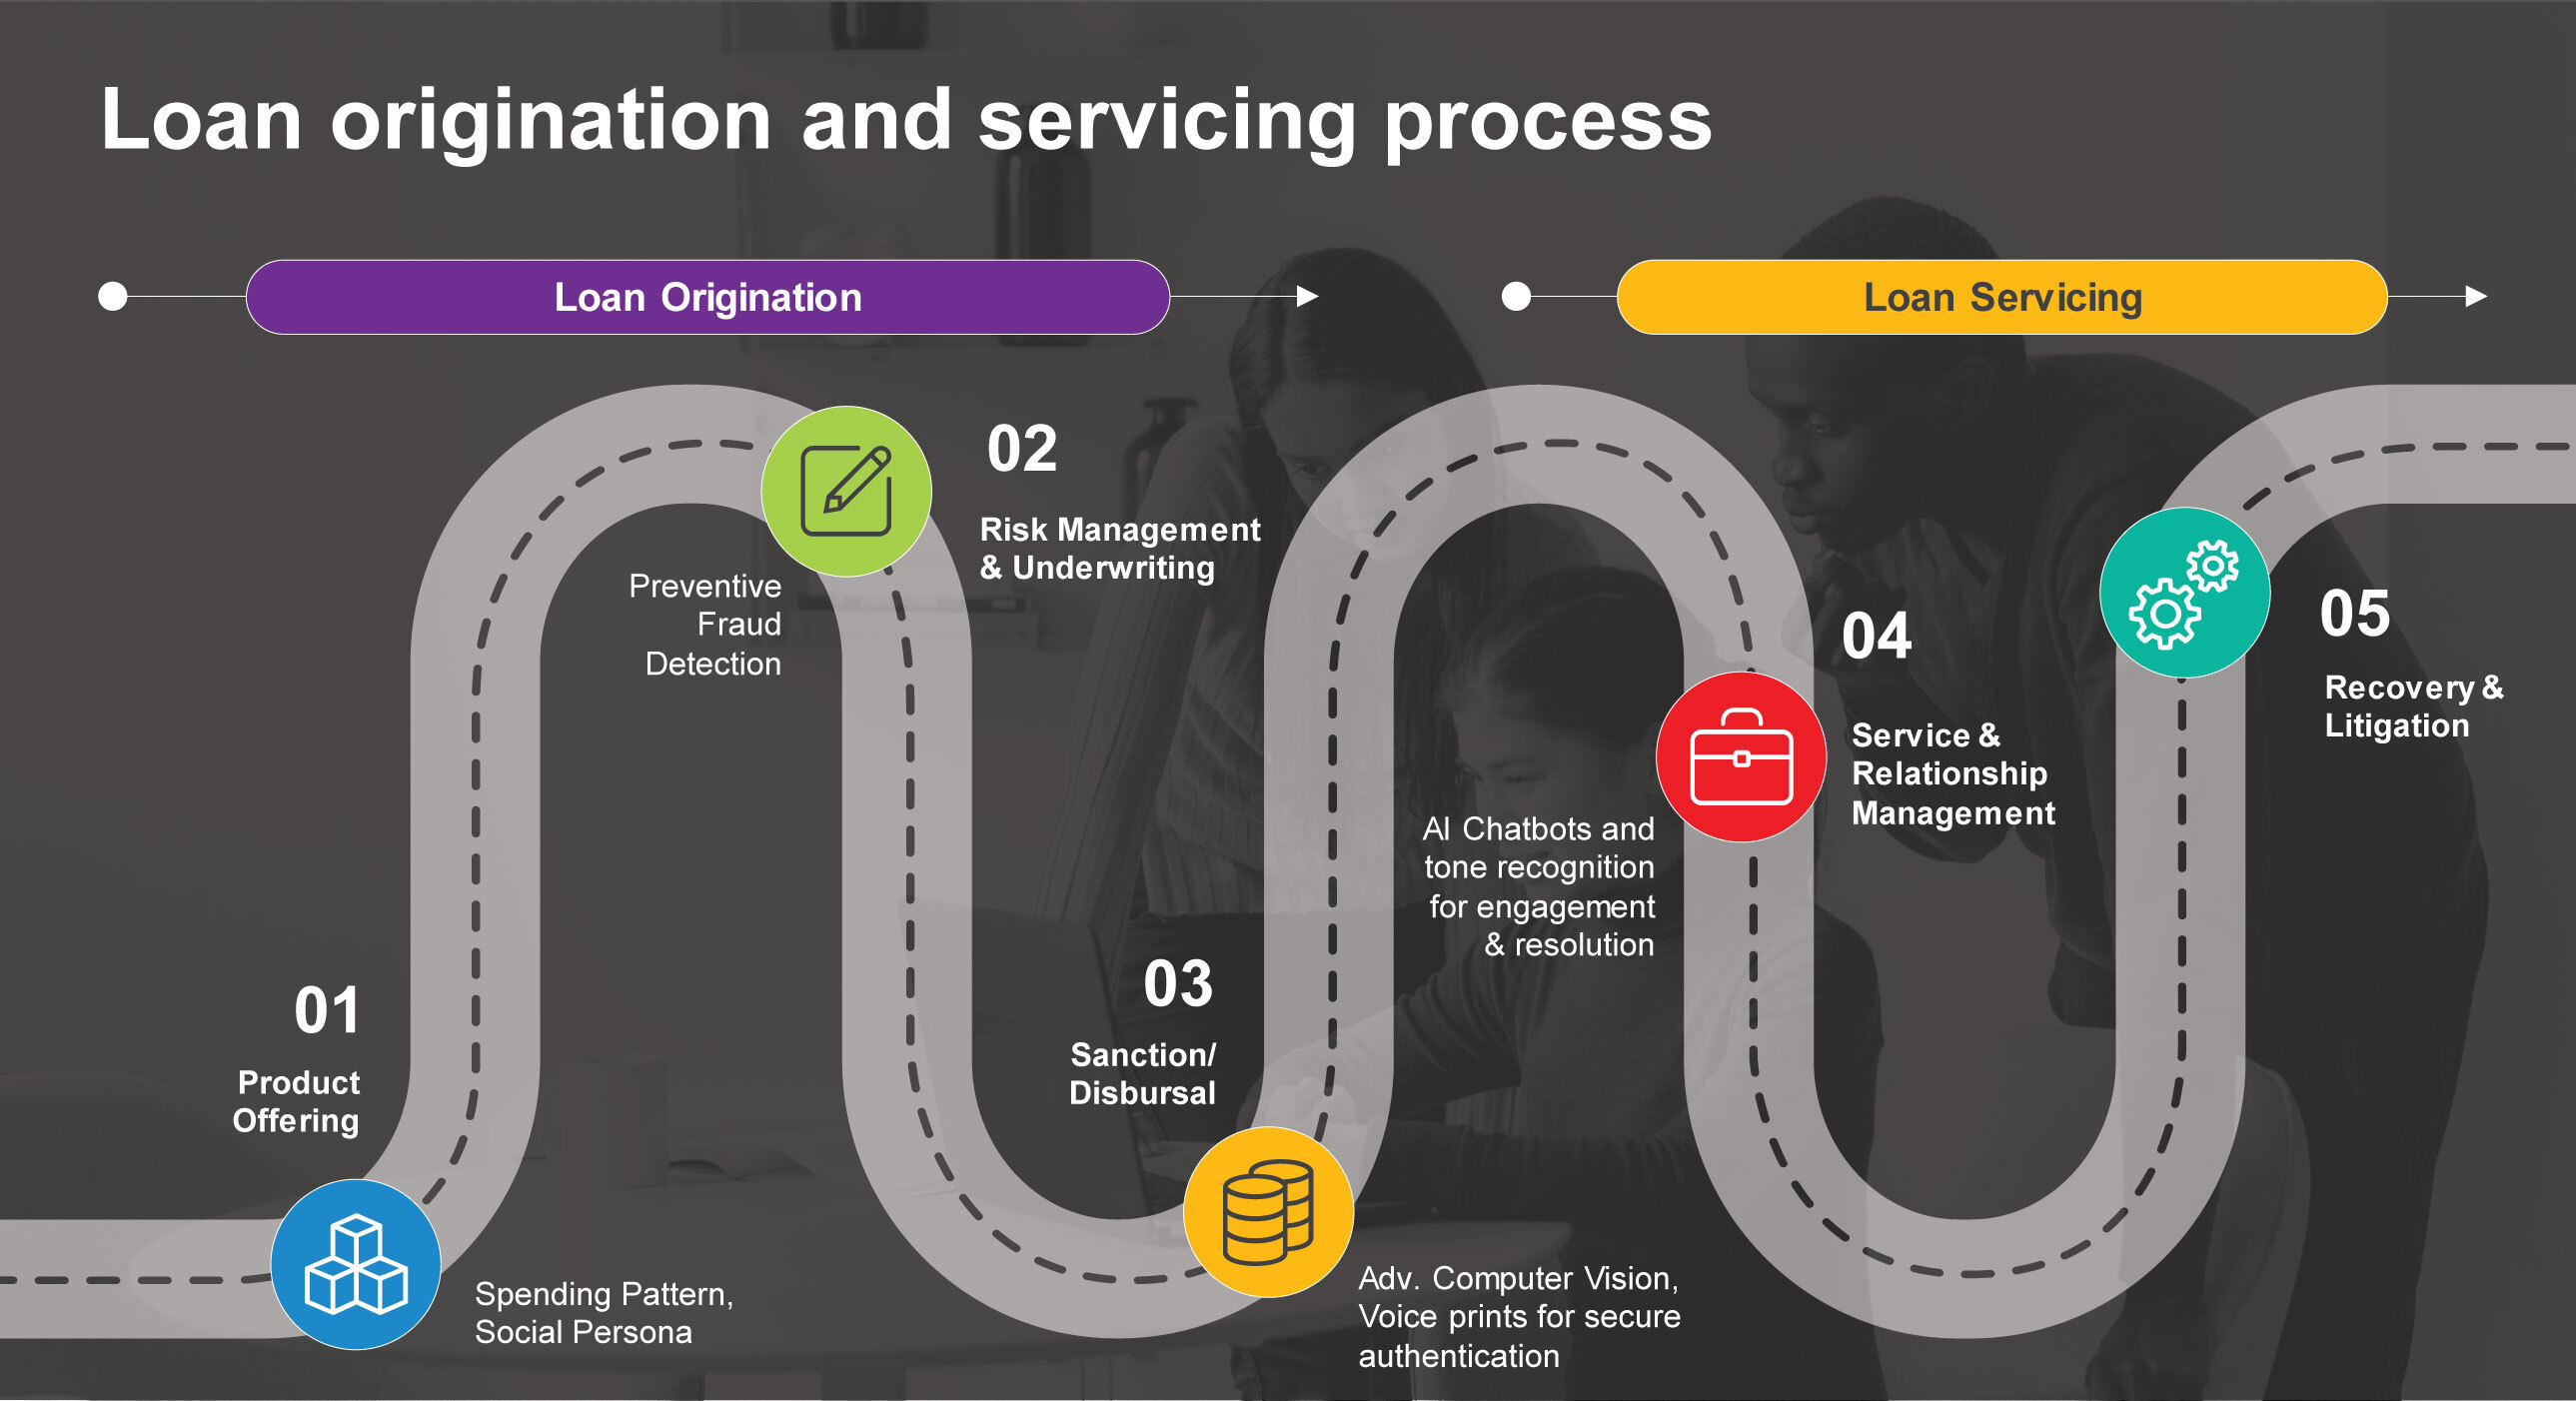 Figure 1: Identifying impactful areas for technology investment in loan origination and servicing process